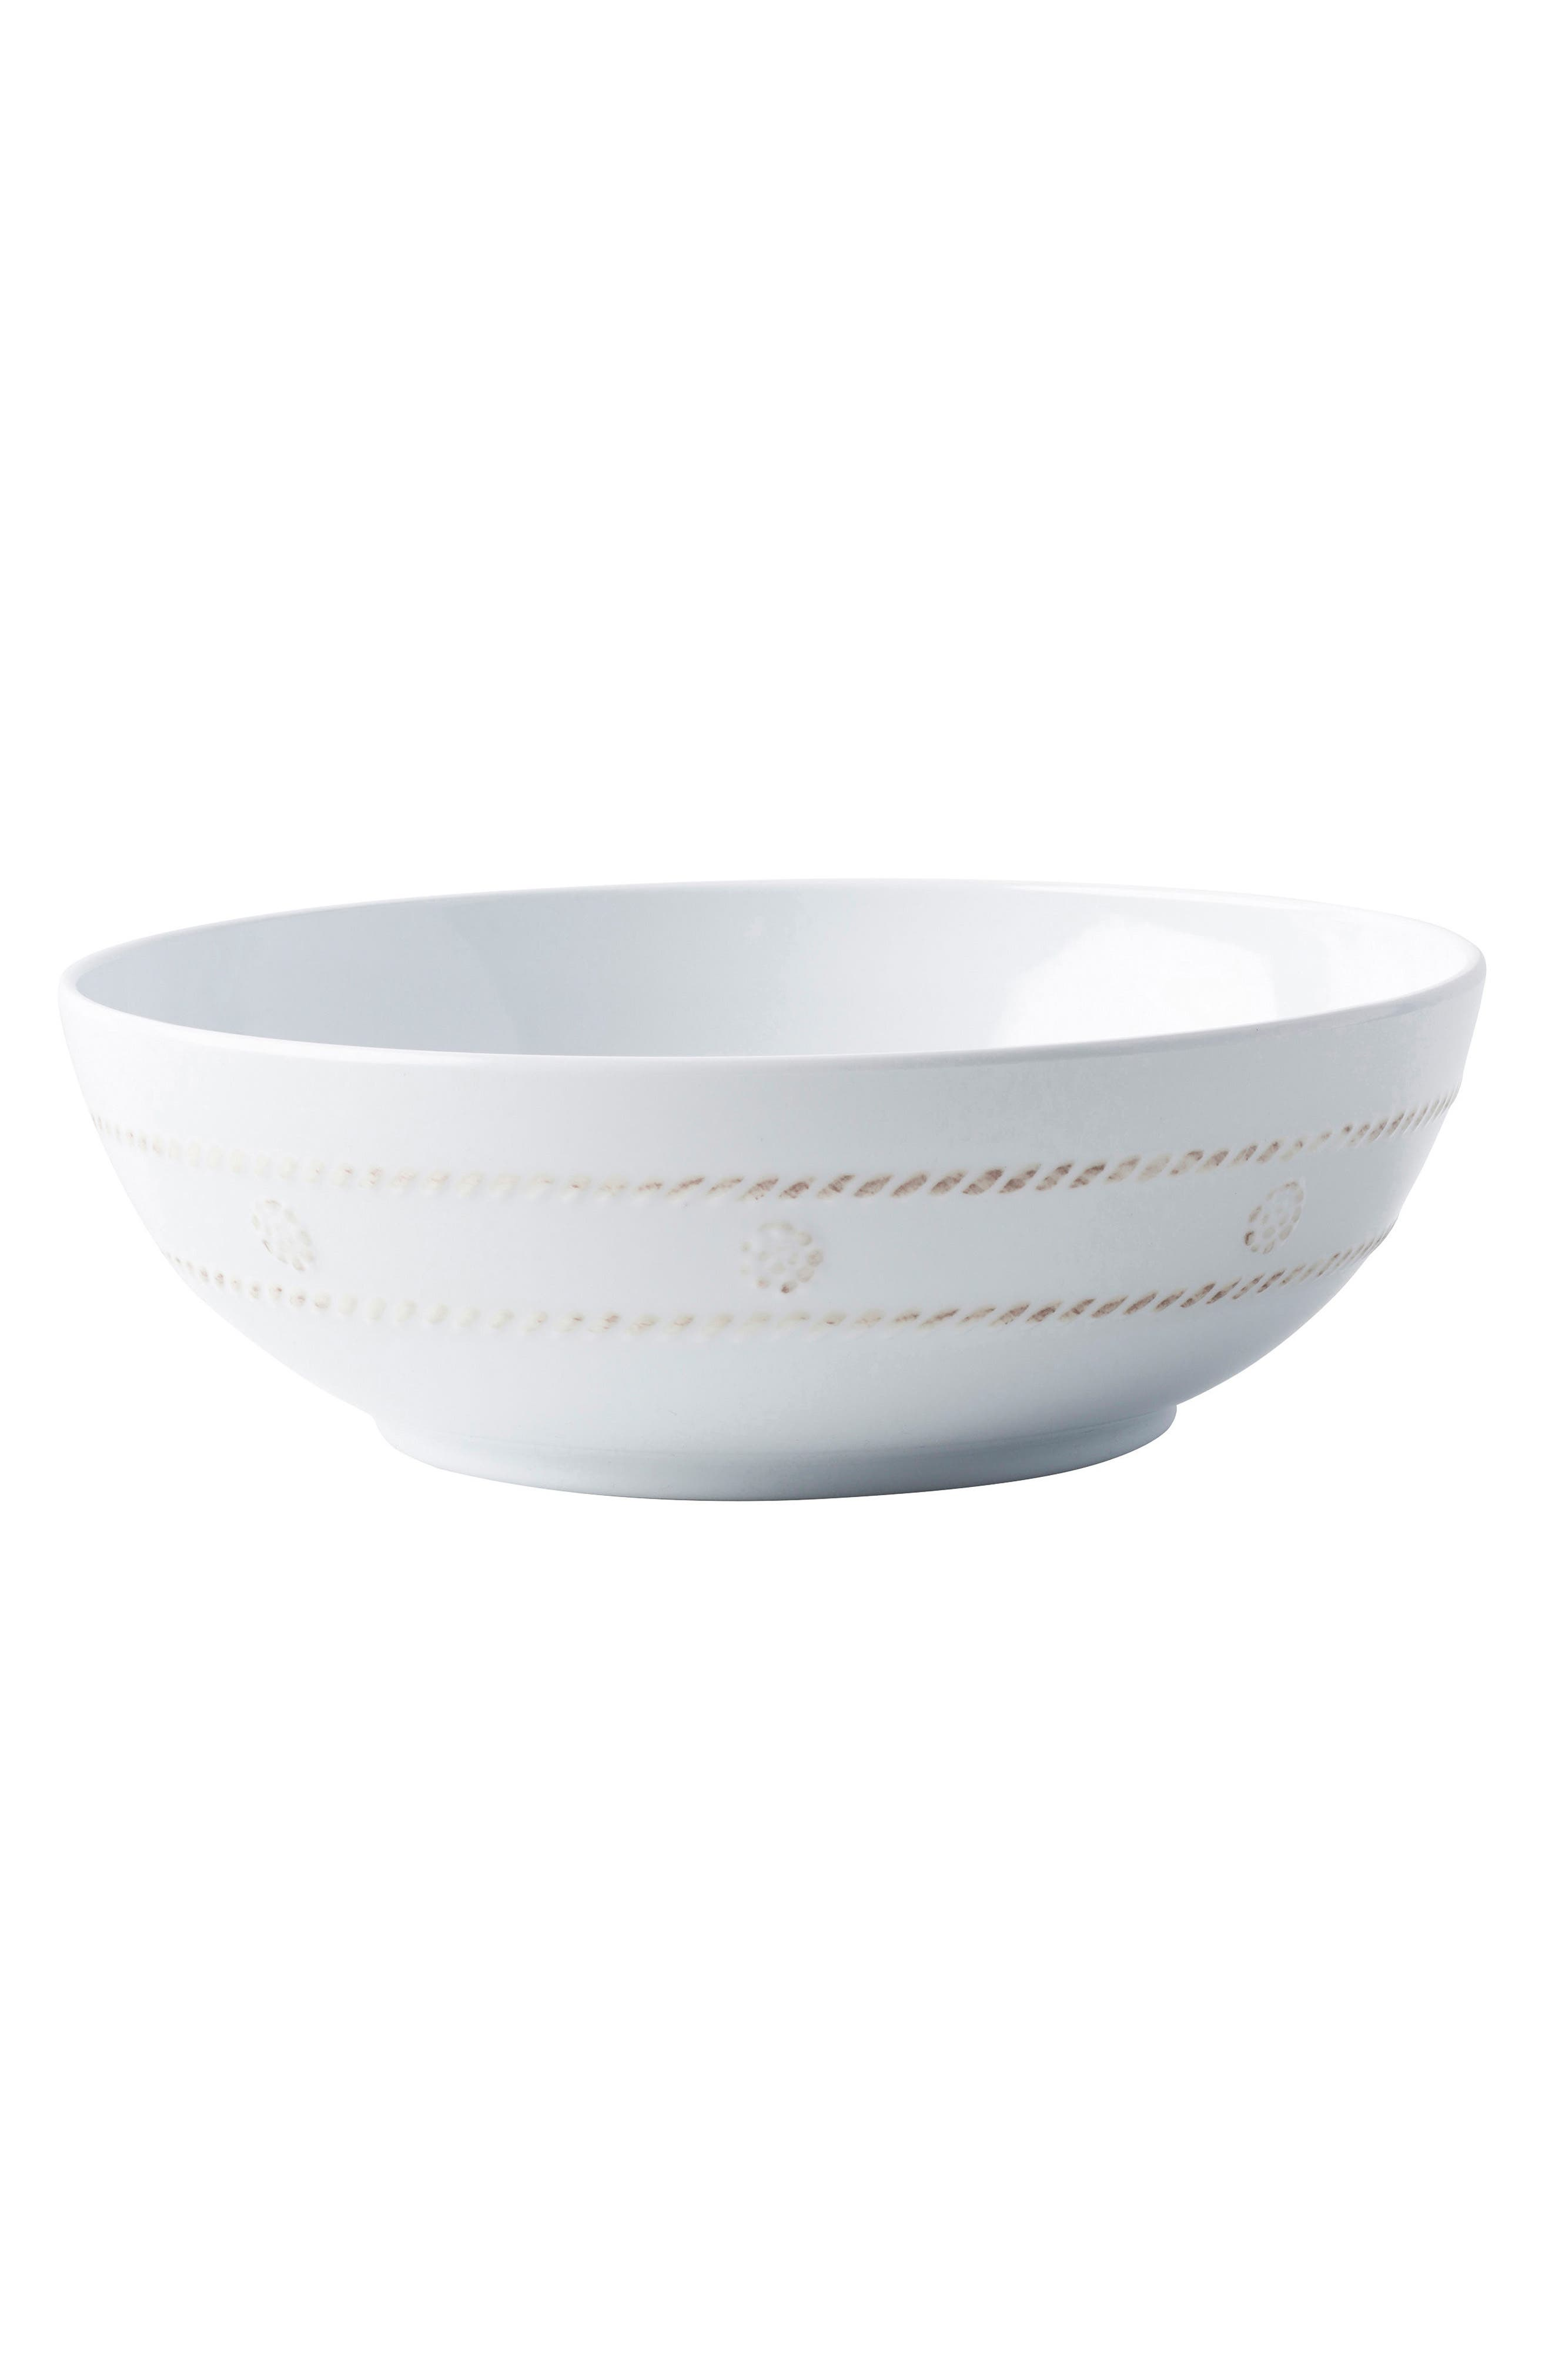 Berry & Thread Melamine Coupe Bowl,                         Main,                         color,